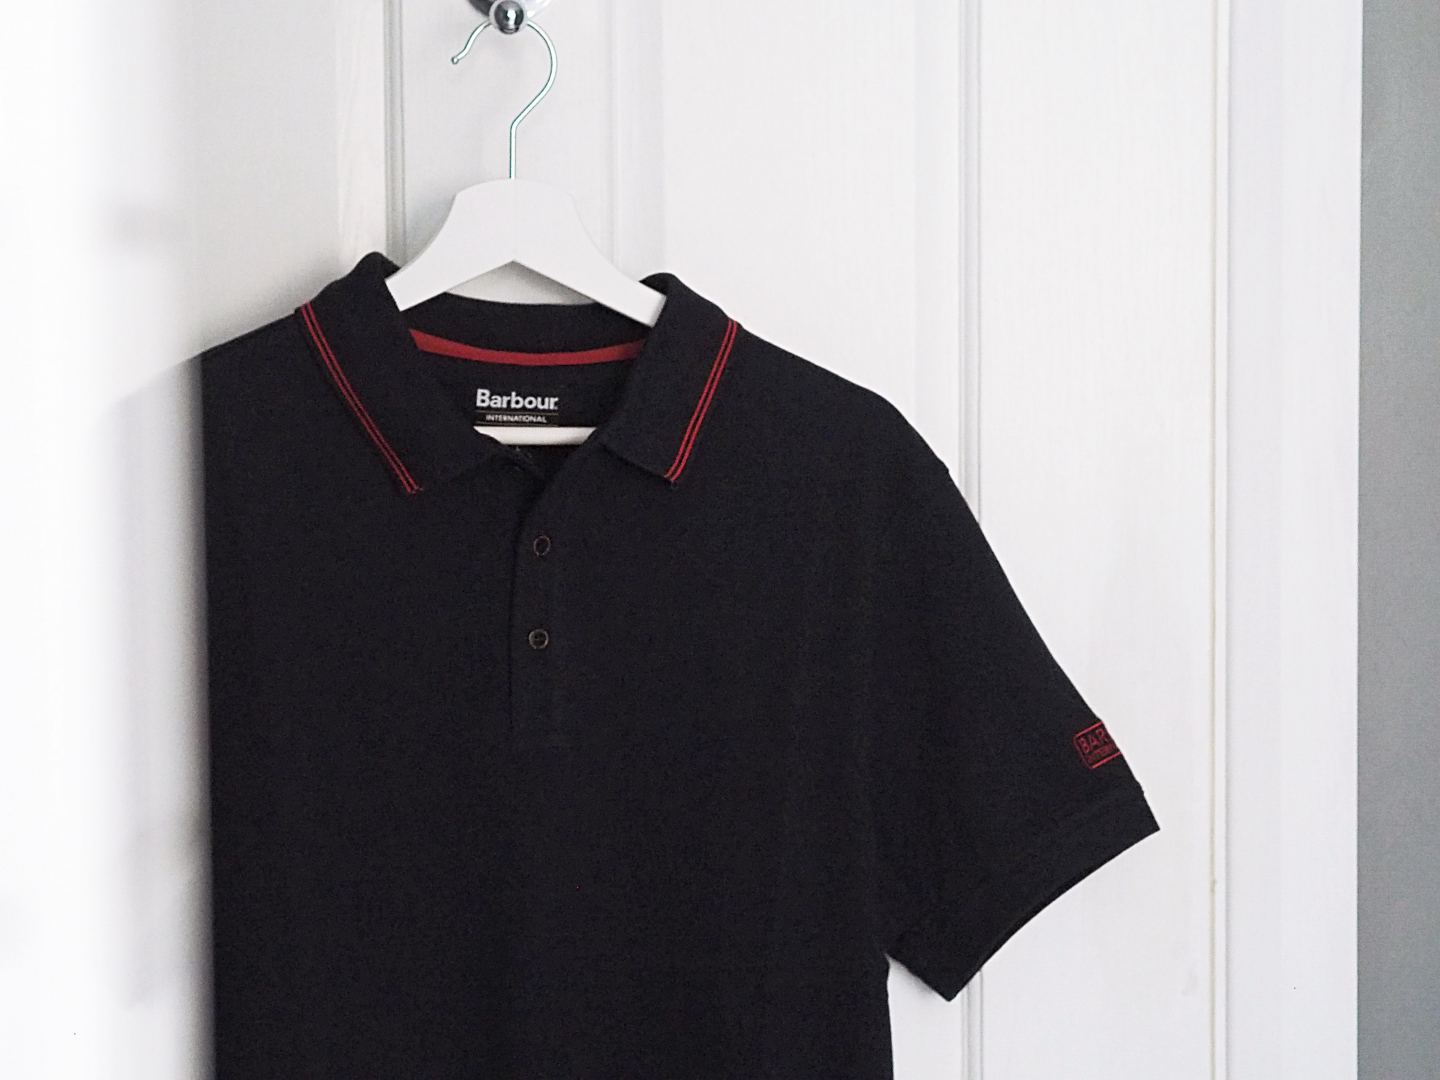 barbour tee shirt